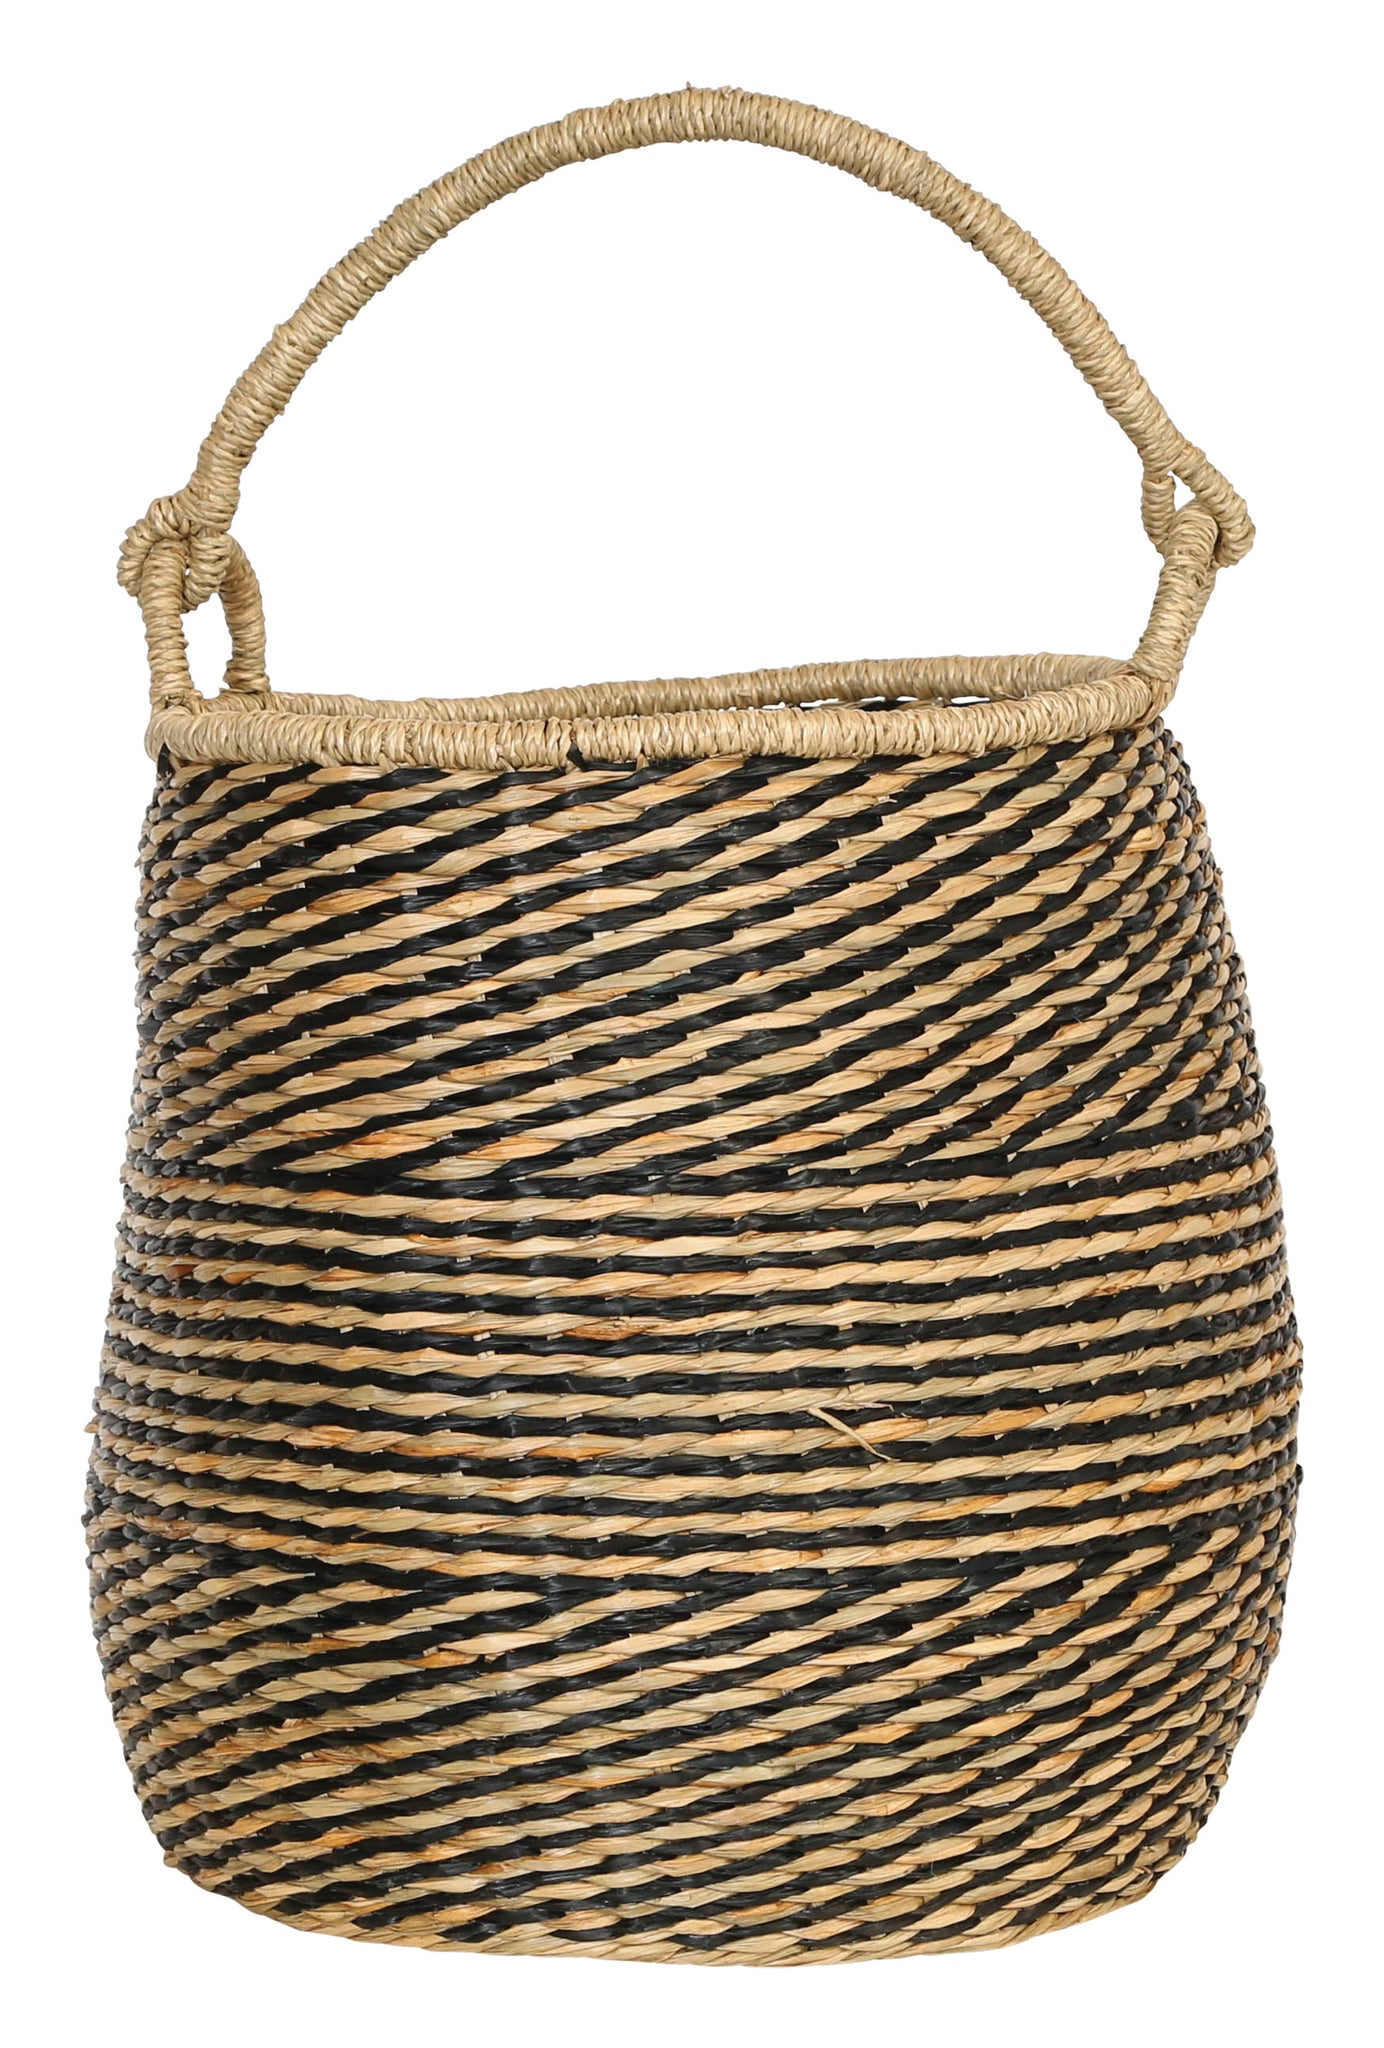 "21.25""H Handwoven Seagrass Basket with Handle"